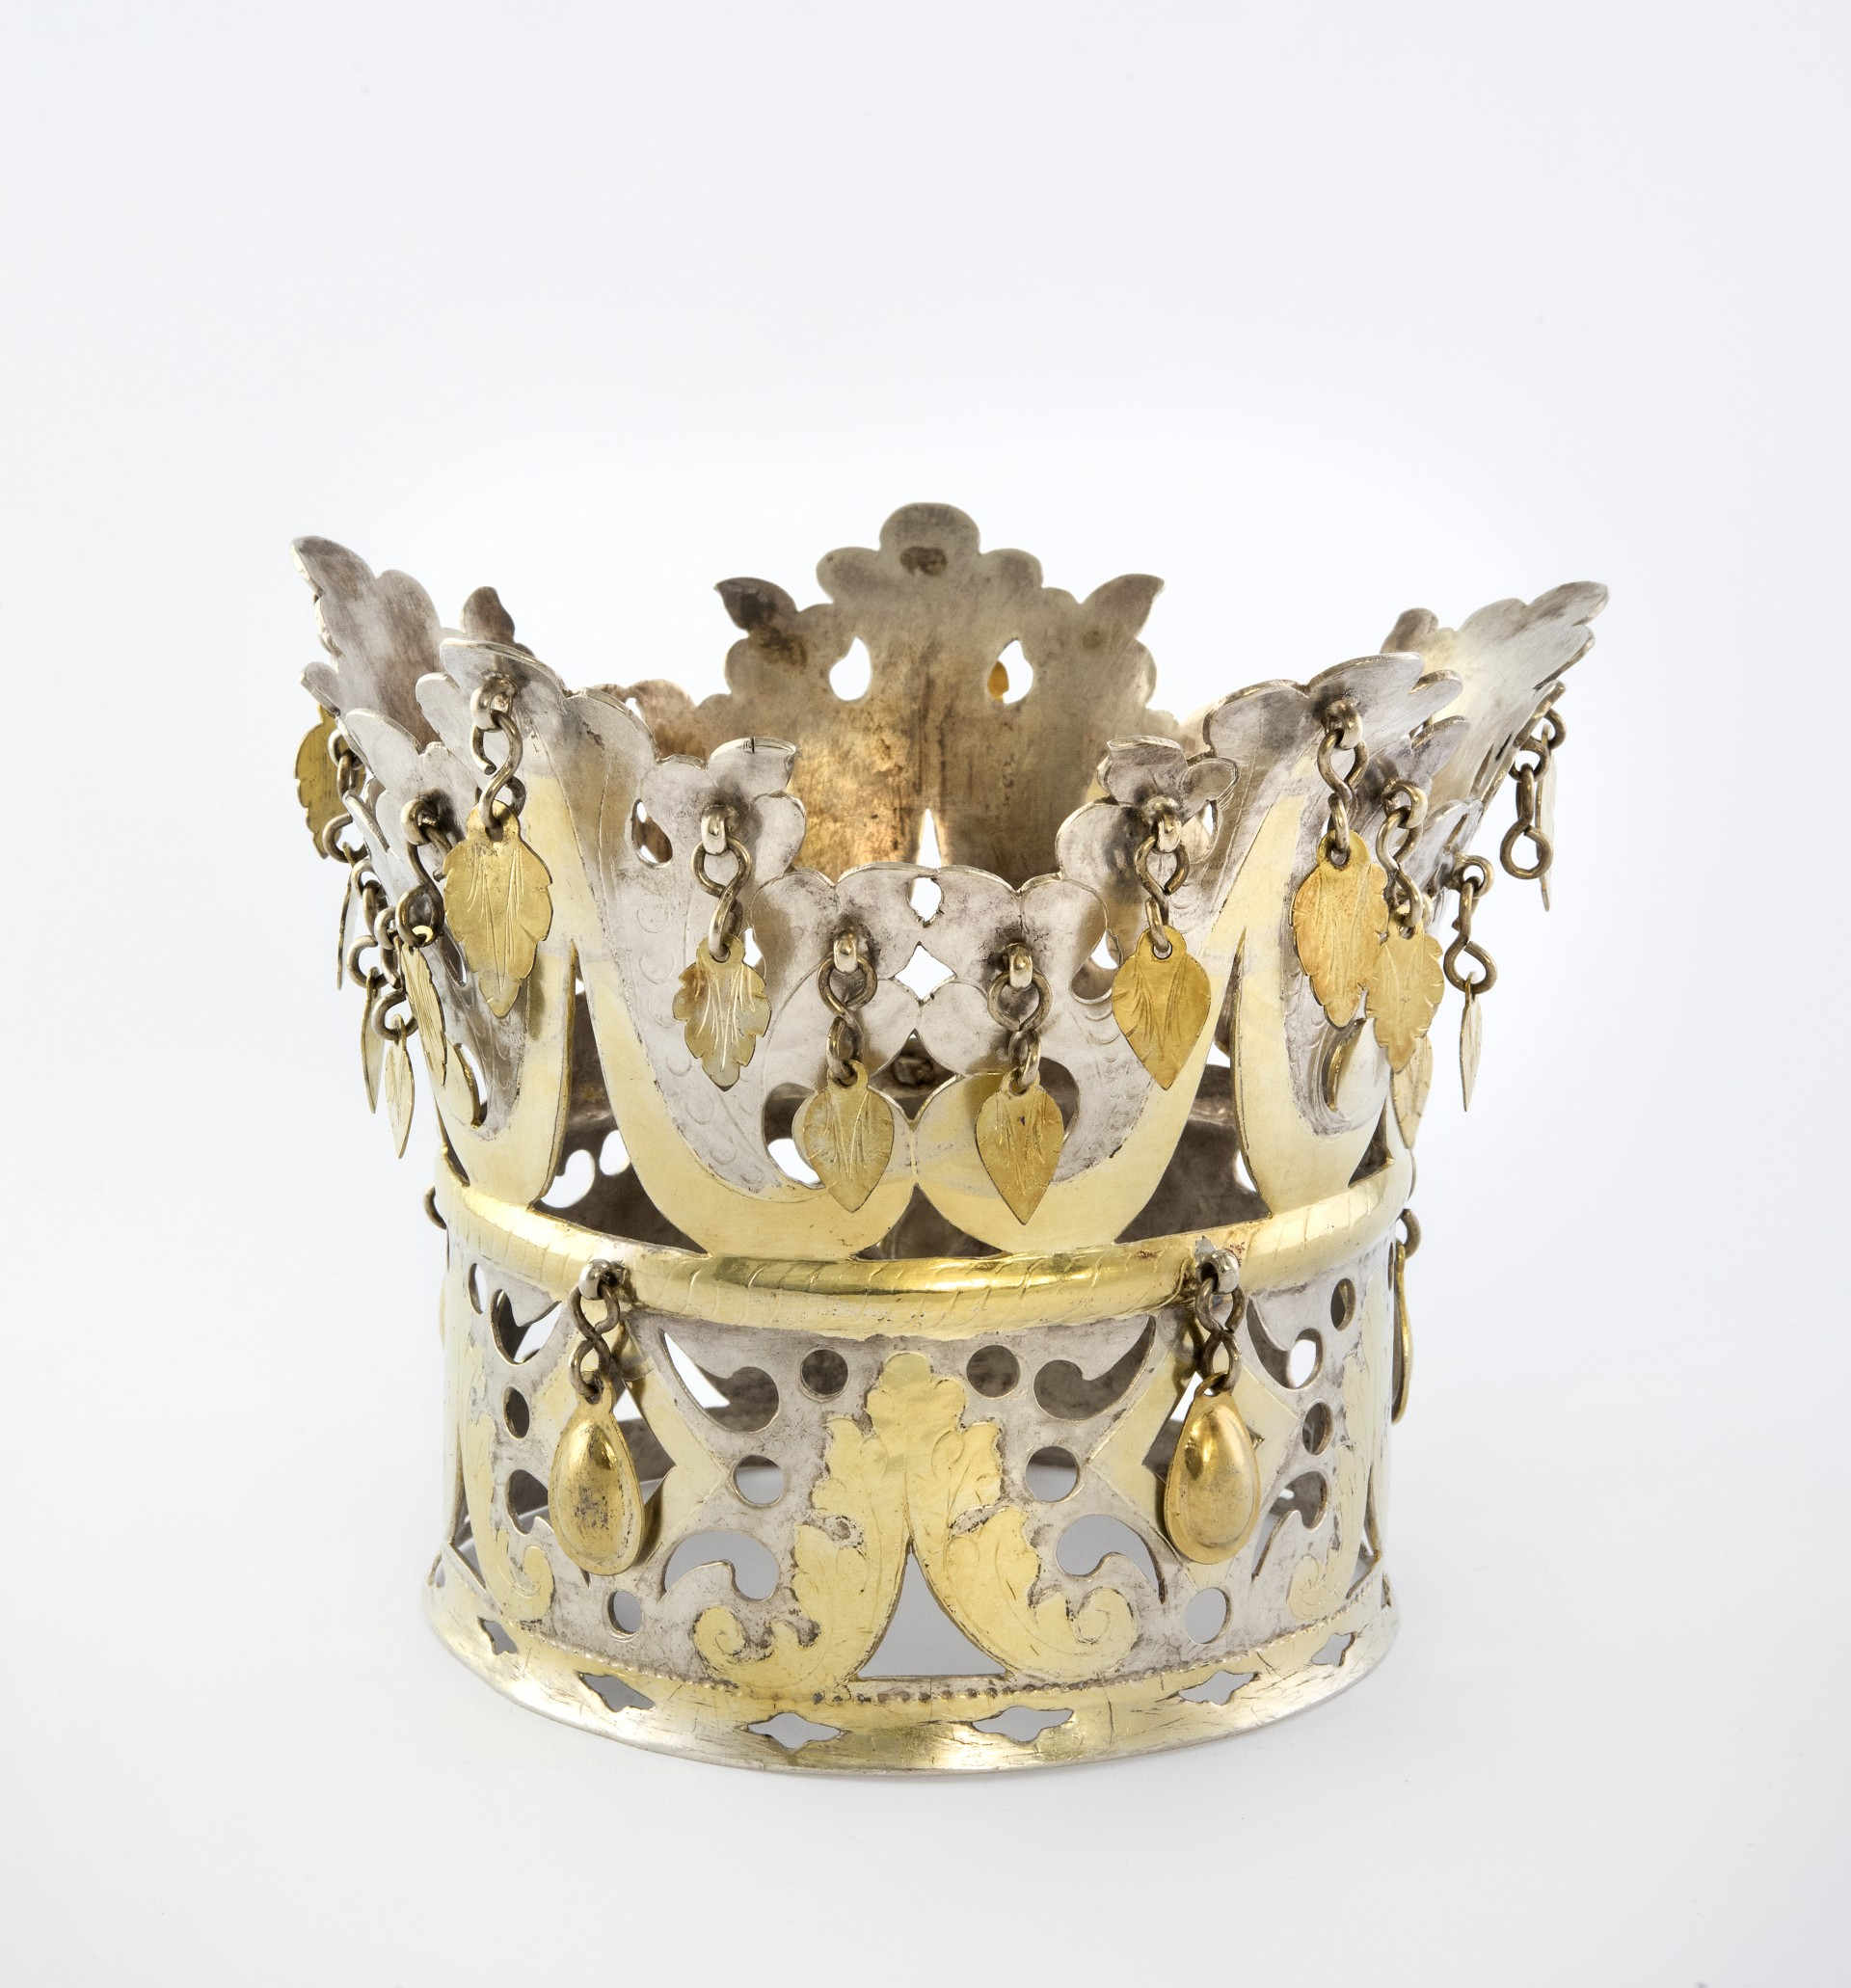 Sami bridal crown of parcel-gilt silver. Acquired by Nordiska museet 1912. NM.0119227. Photo: Nordiska museet